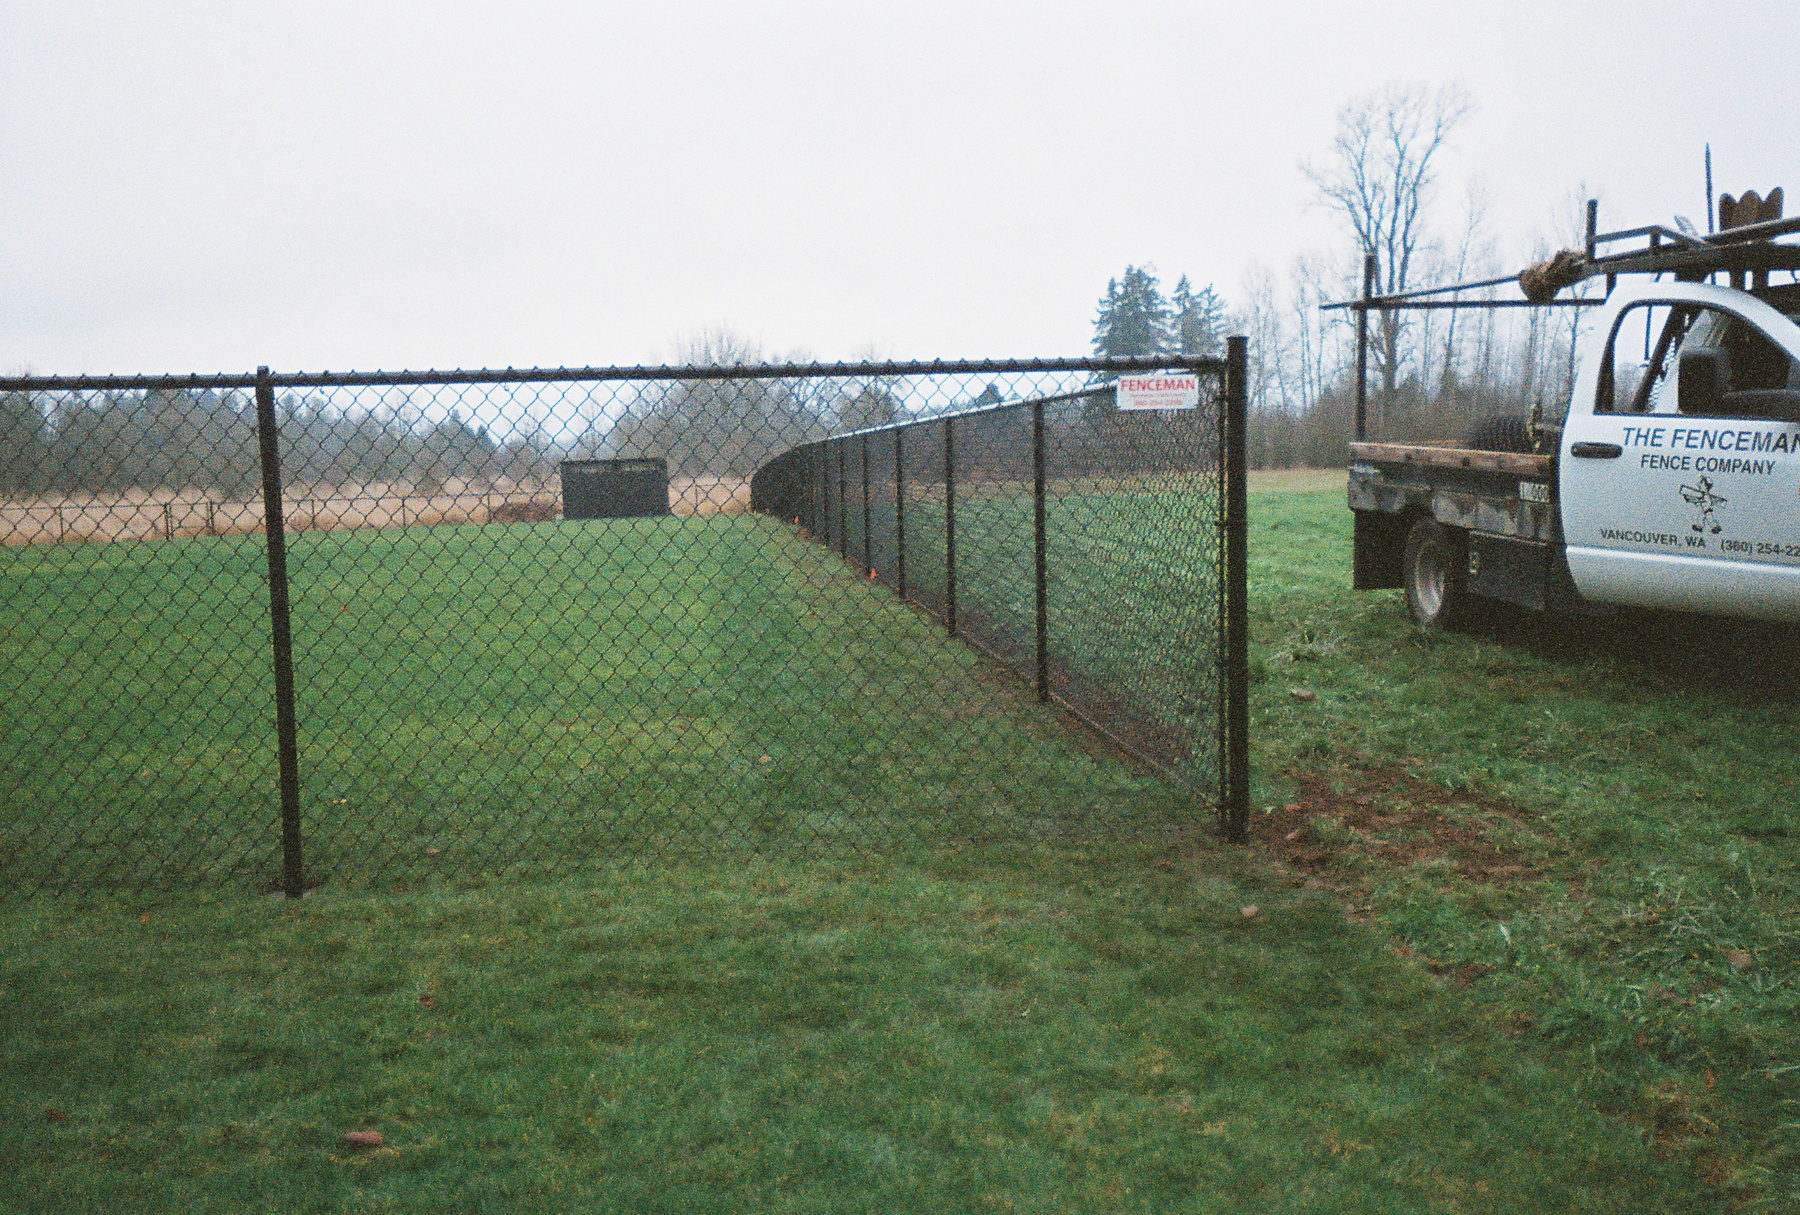 Black Vinyl Chain Link Fence, providing both security and beauty without the added expense of ornamental construction. Contact Vancouver Washington's Best Fence Builders. The Fenceman Fence Company installs wood, vinyl, chain link and ornamental iron fences. We also offer materials for the do it yourselfer.